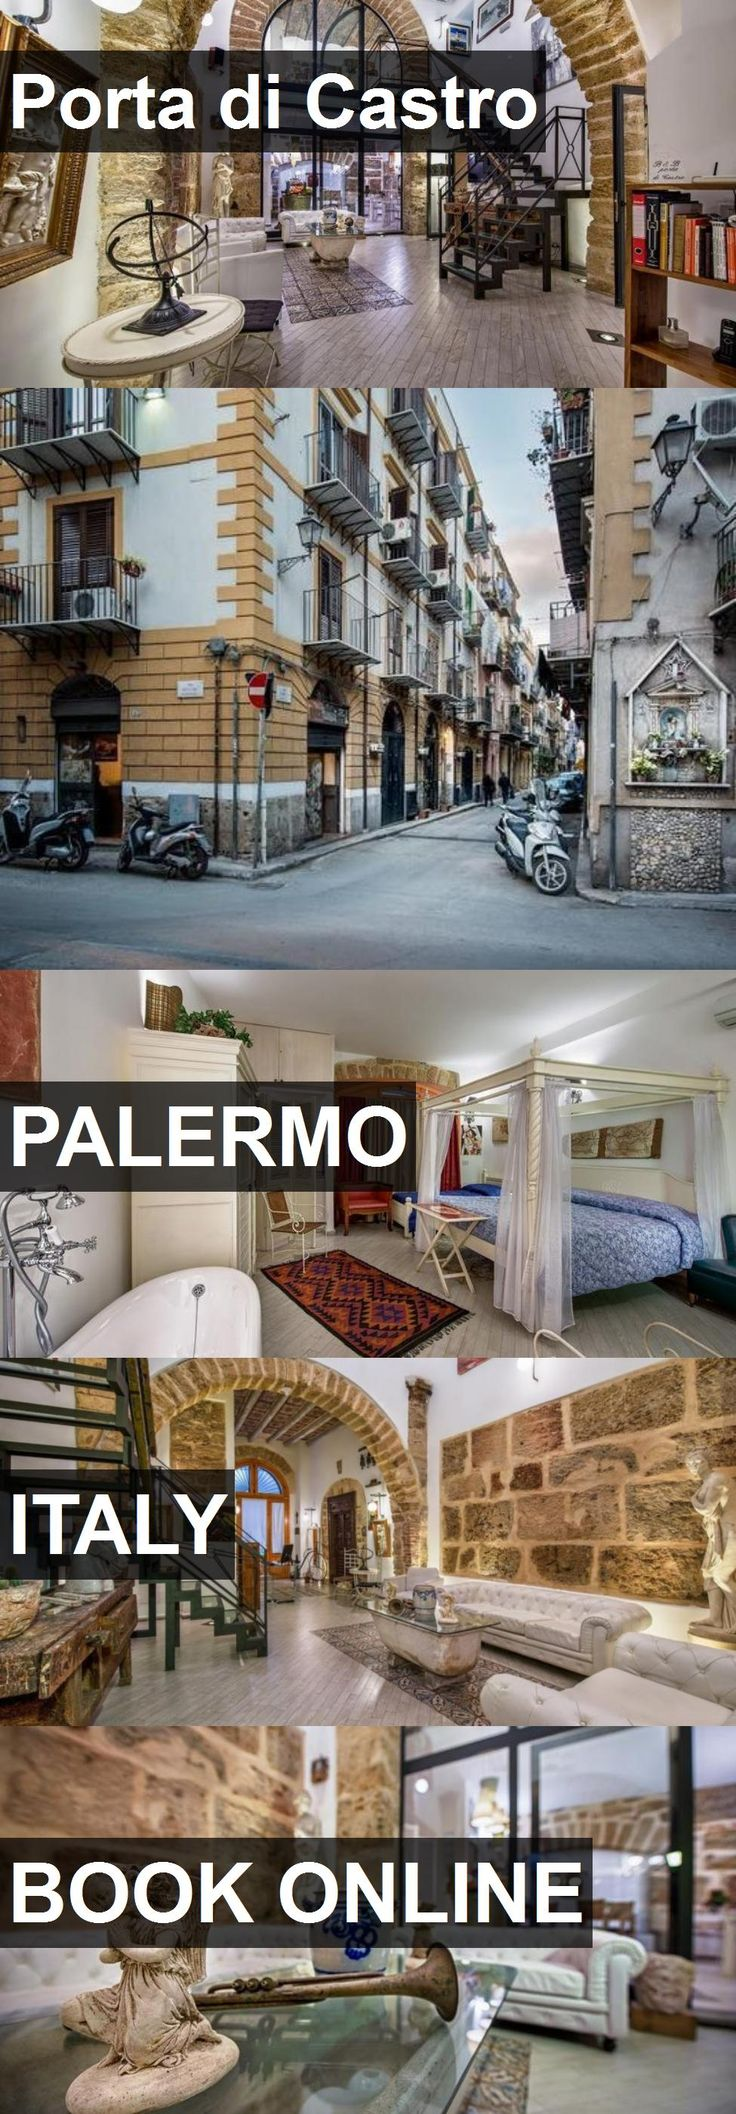 Hotel Porta di Castro in Palermo, Italy. For more information, photos, reviews and best prices please follow the link. #Italy #Palermo #travel #vacation #hotel